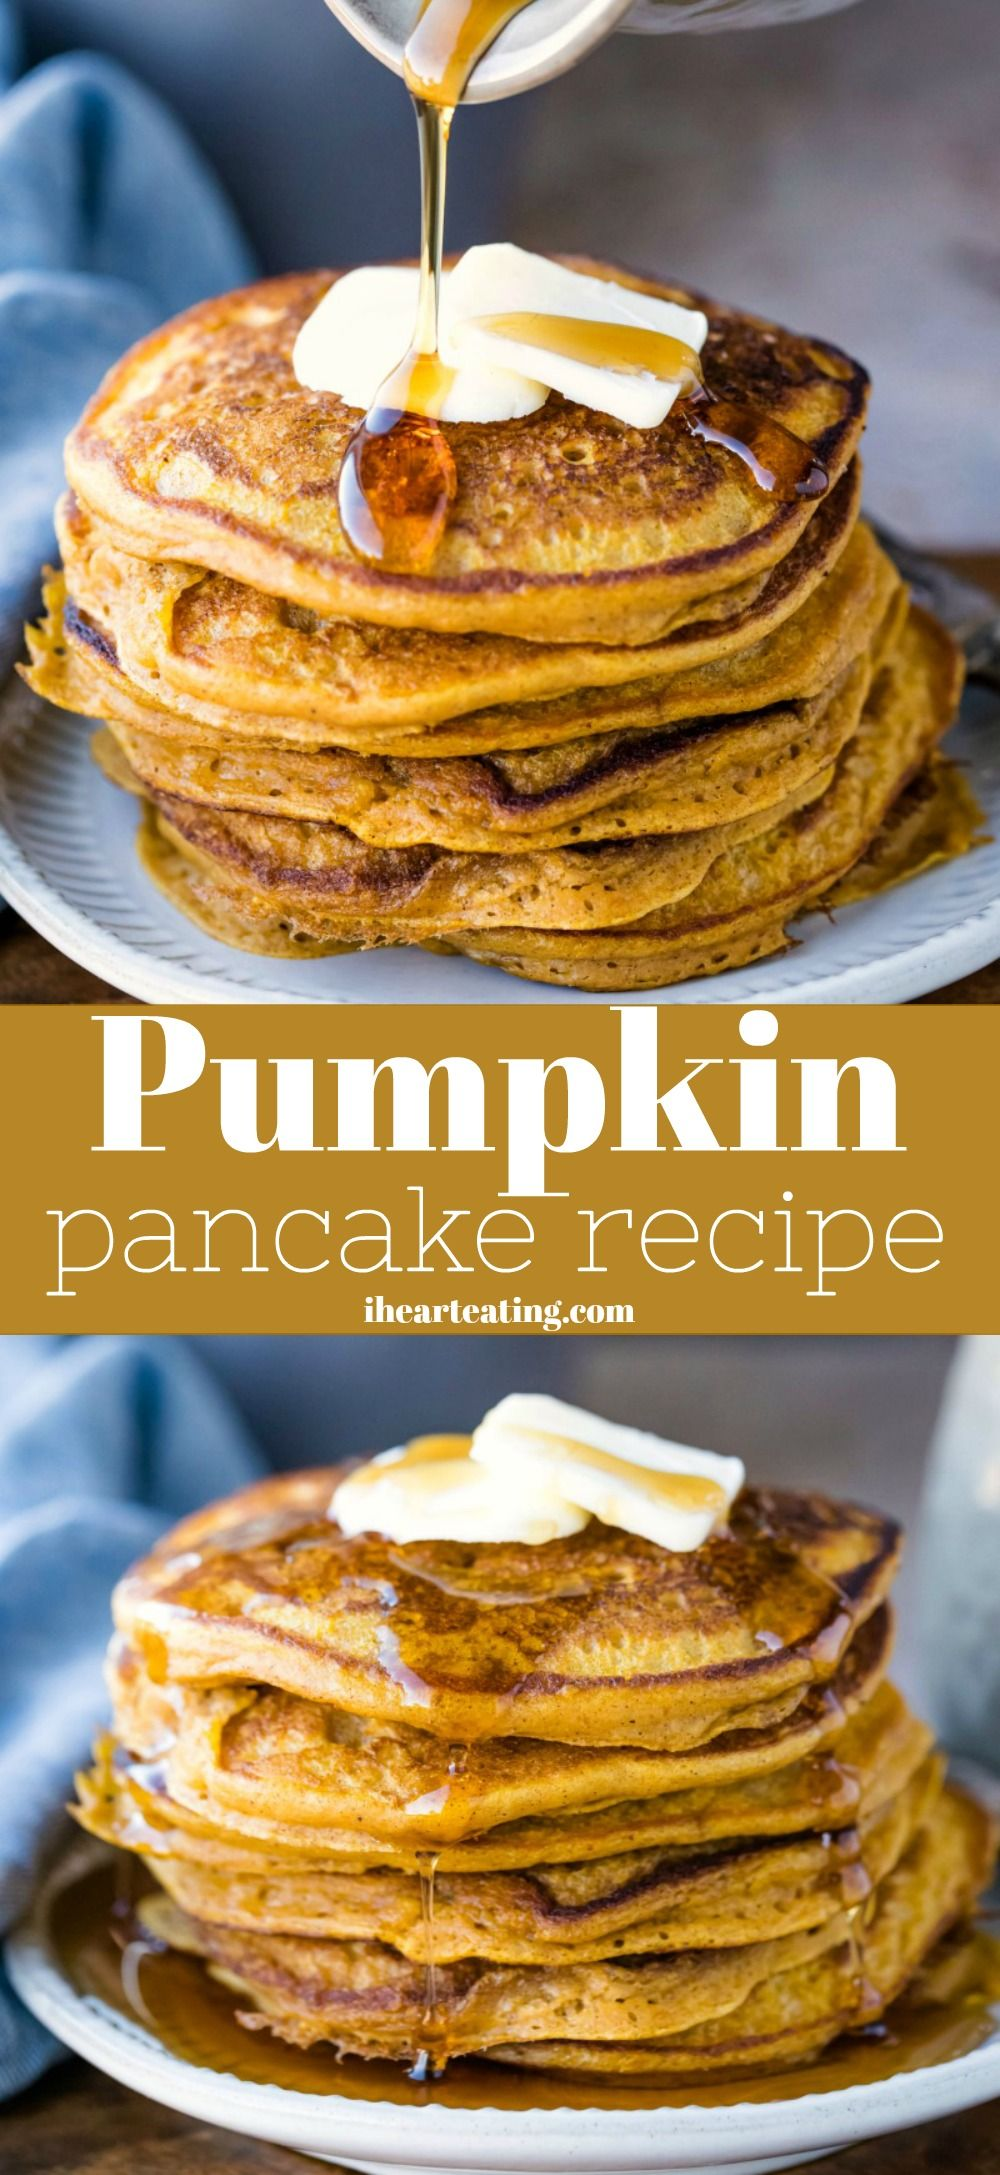 Pumpkin Pancake Recipe Best Easy Buttermilk Pumpkin Pancake Recipe Pumpkin Pumpkinspi Pumpkin Pancakes Fluffy Pumpkin Pancakes Pumpkin Buttermilk Pancakes